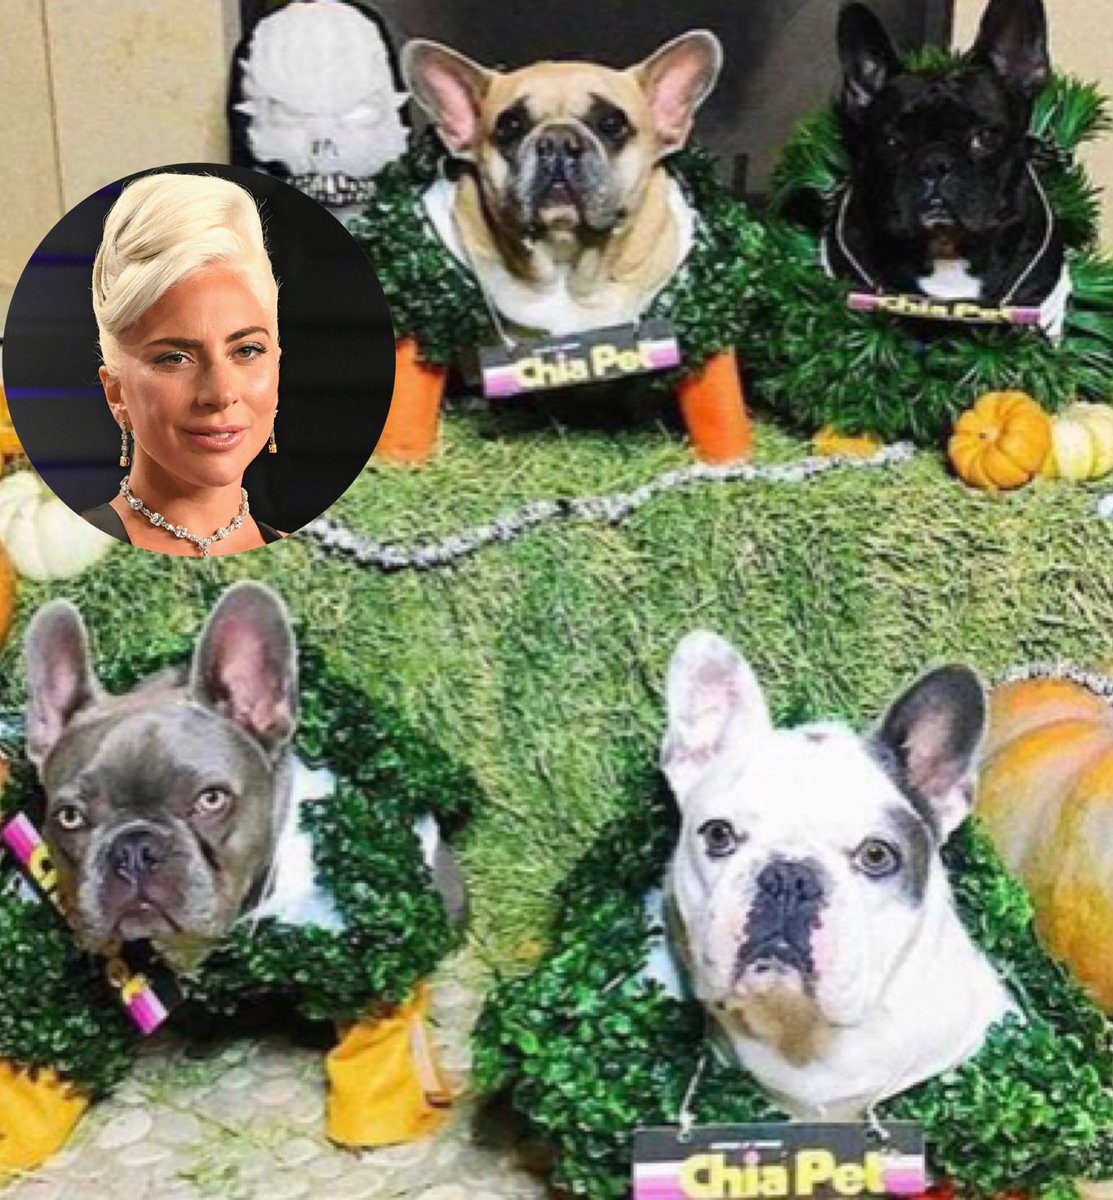 Lady Gaga's dogs were targeted by thieves last night. The thieves shot her dog walker and stole 2 of her French Bulldogs.  🔗: